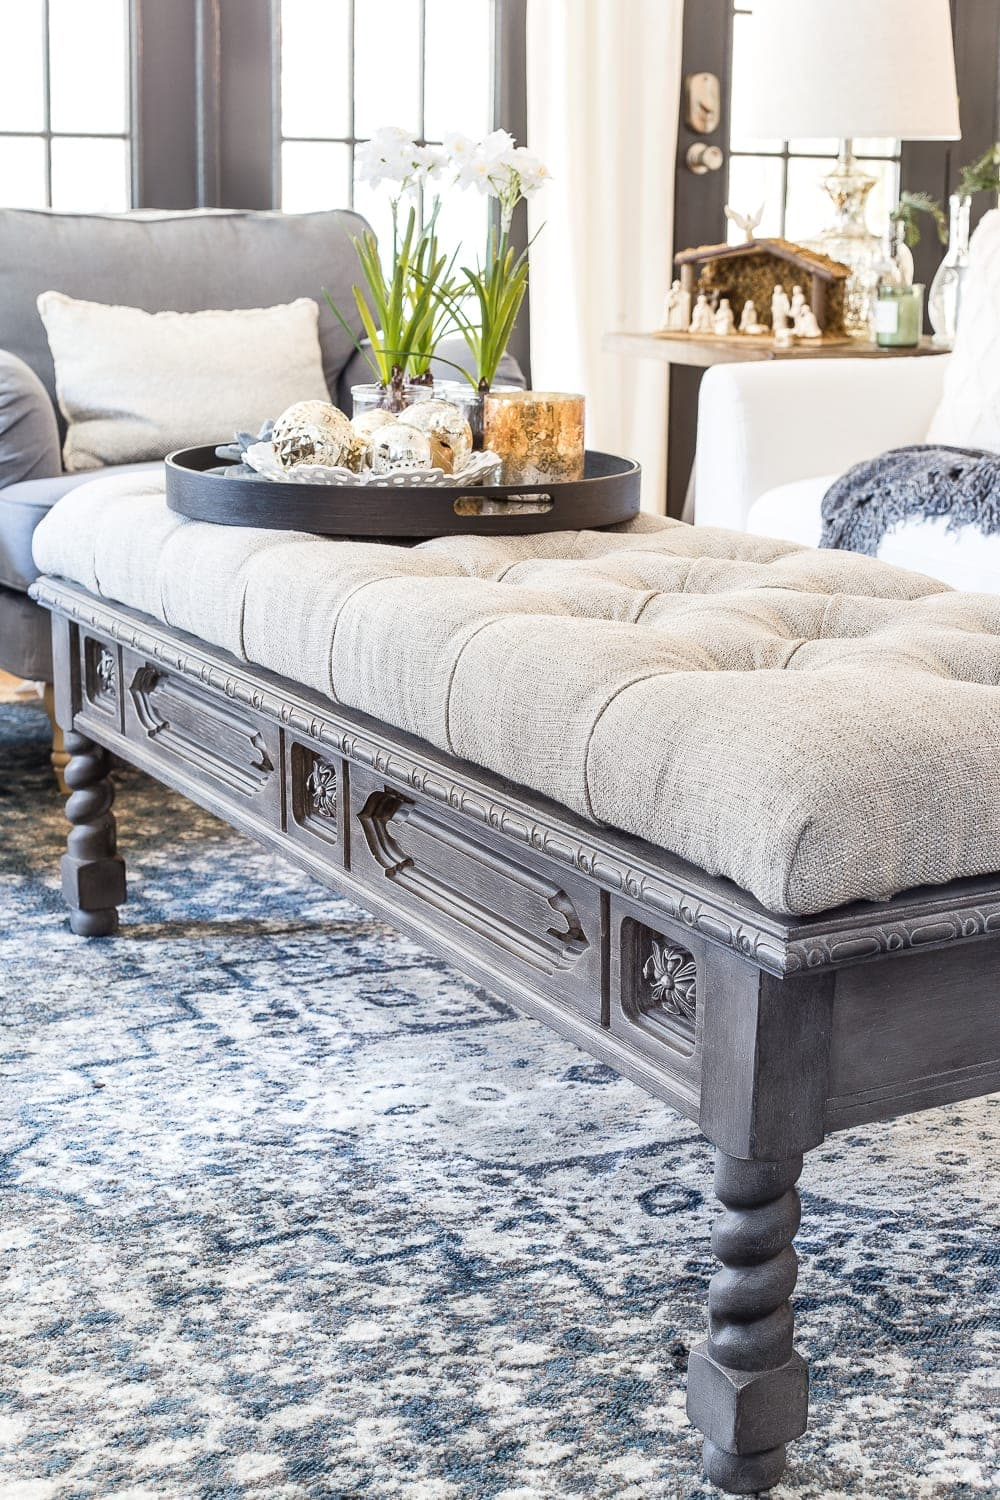 DIY Ottoman Bench From A Repurposed Thrift Store Coffee Table |  Blesserhouse.com   How